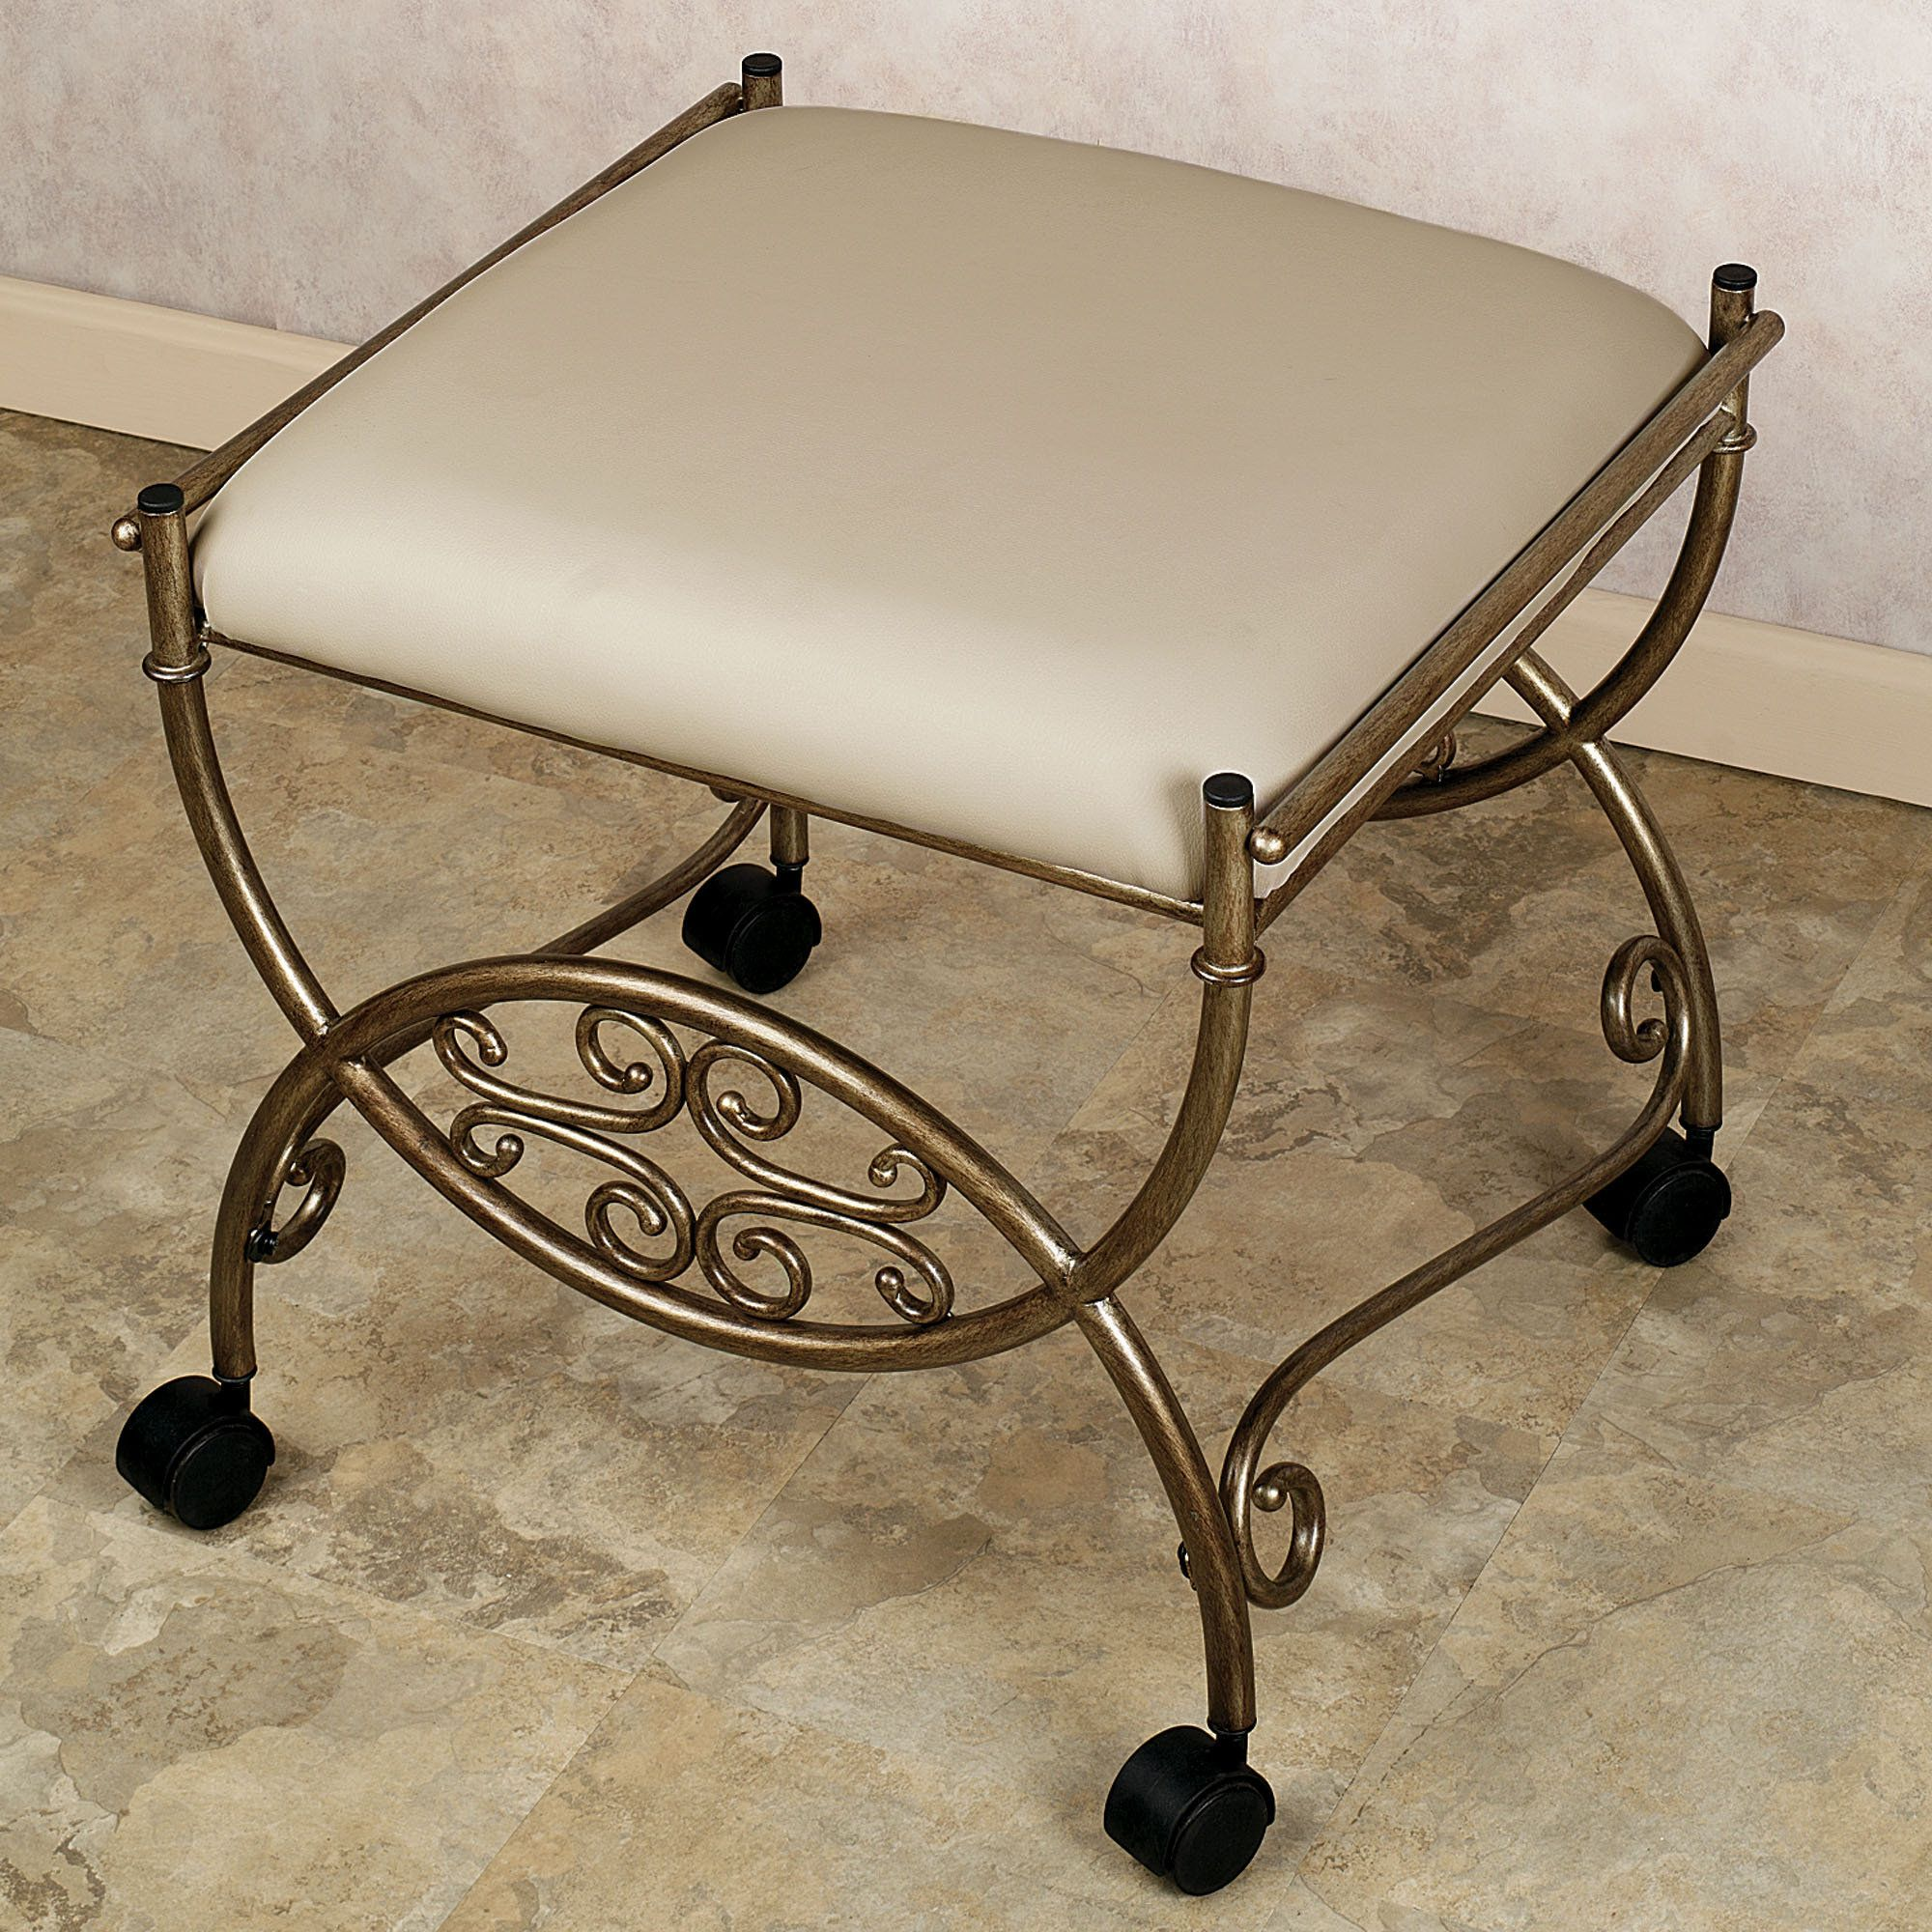 Vanity chairs for bathroom wheels. This one may be a bit too fancy